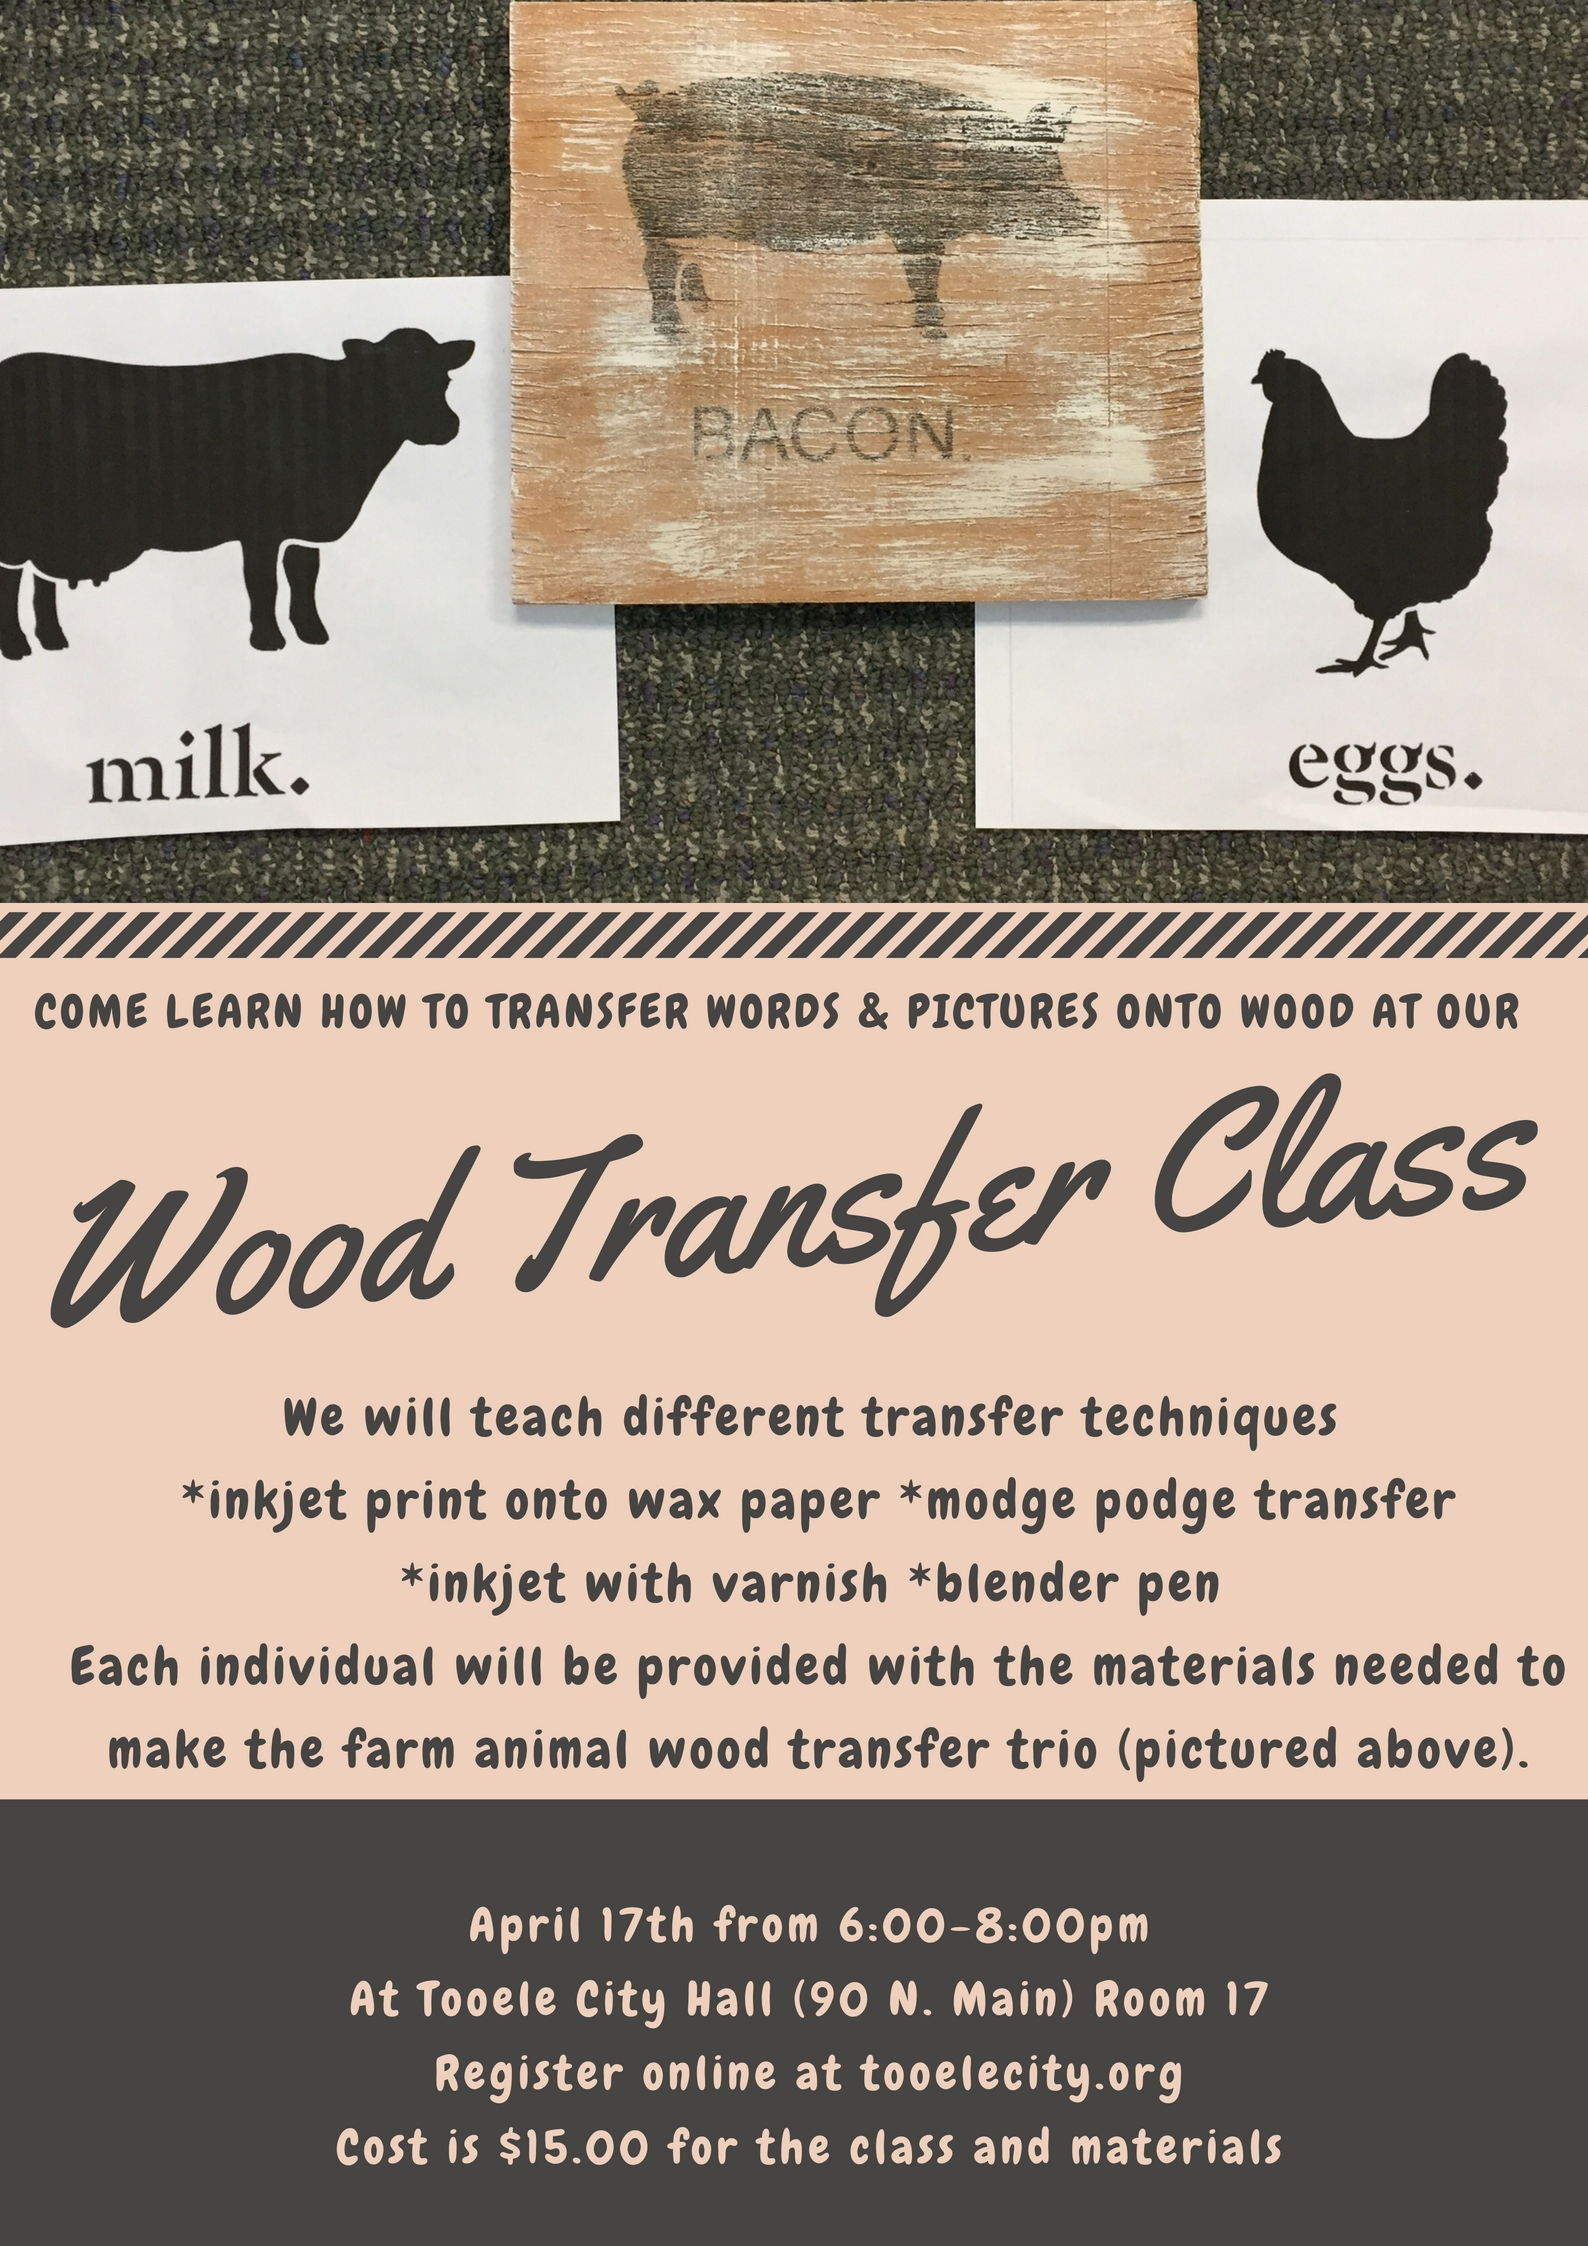 Wood Transfer Class April 17, 2018